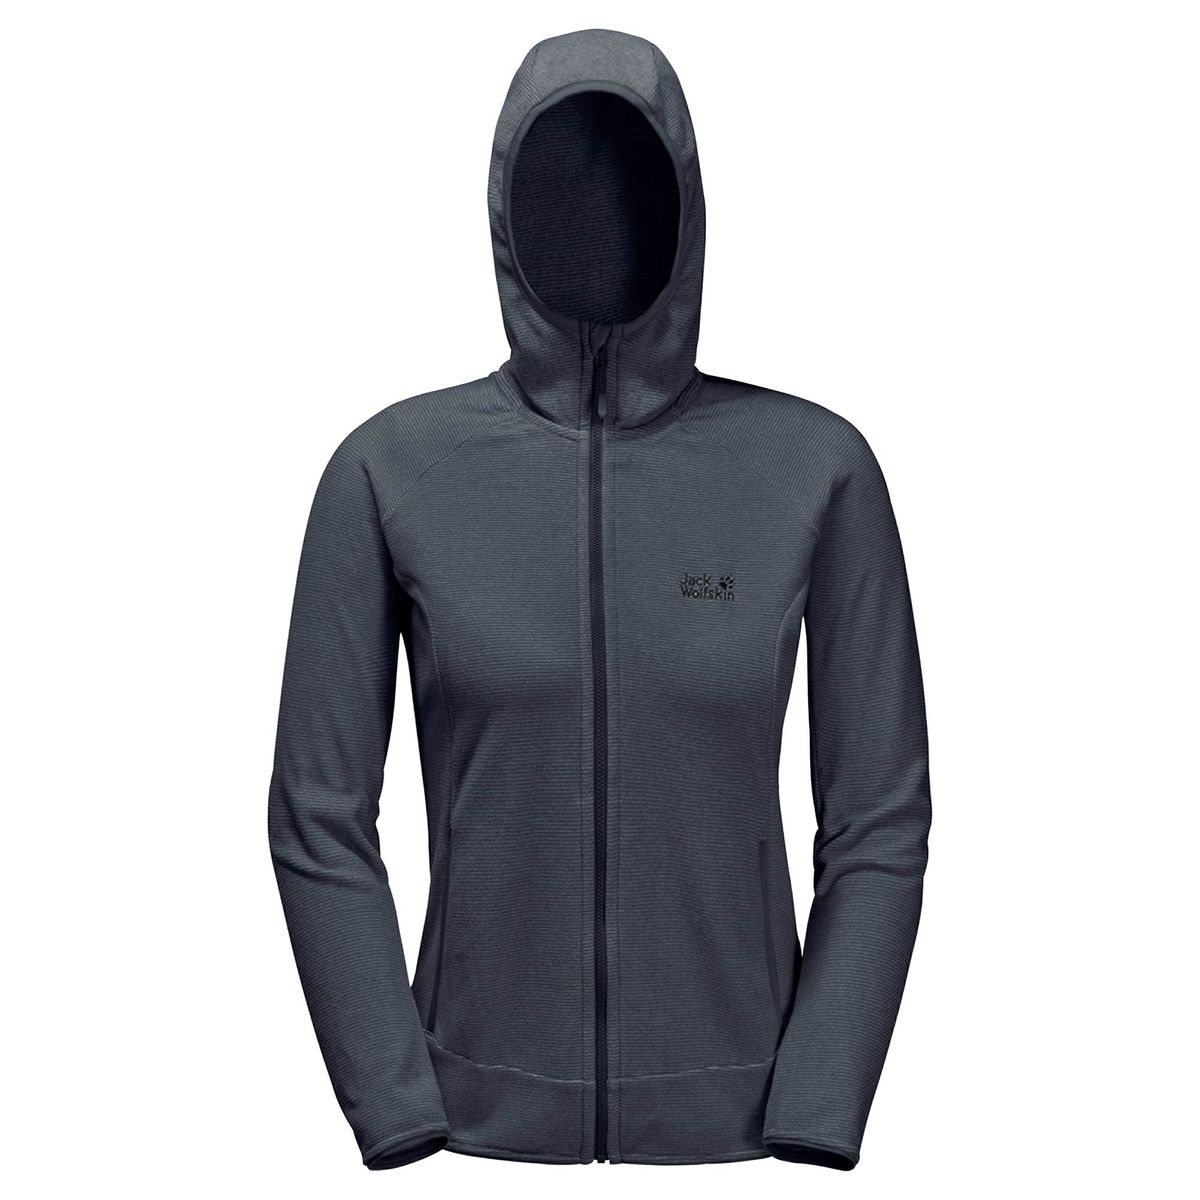 JACK WOLFSKIN LA Cumbre Trail Jacket Fleecejacke Damen in Gr